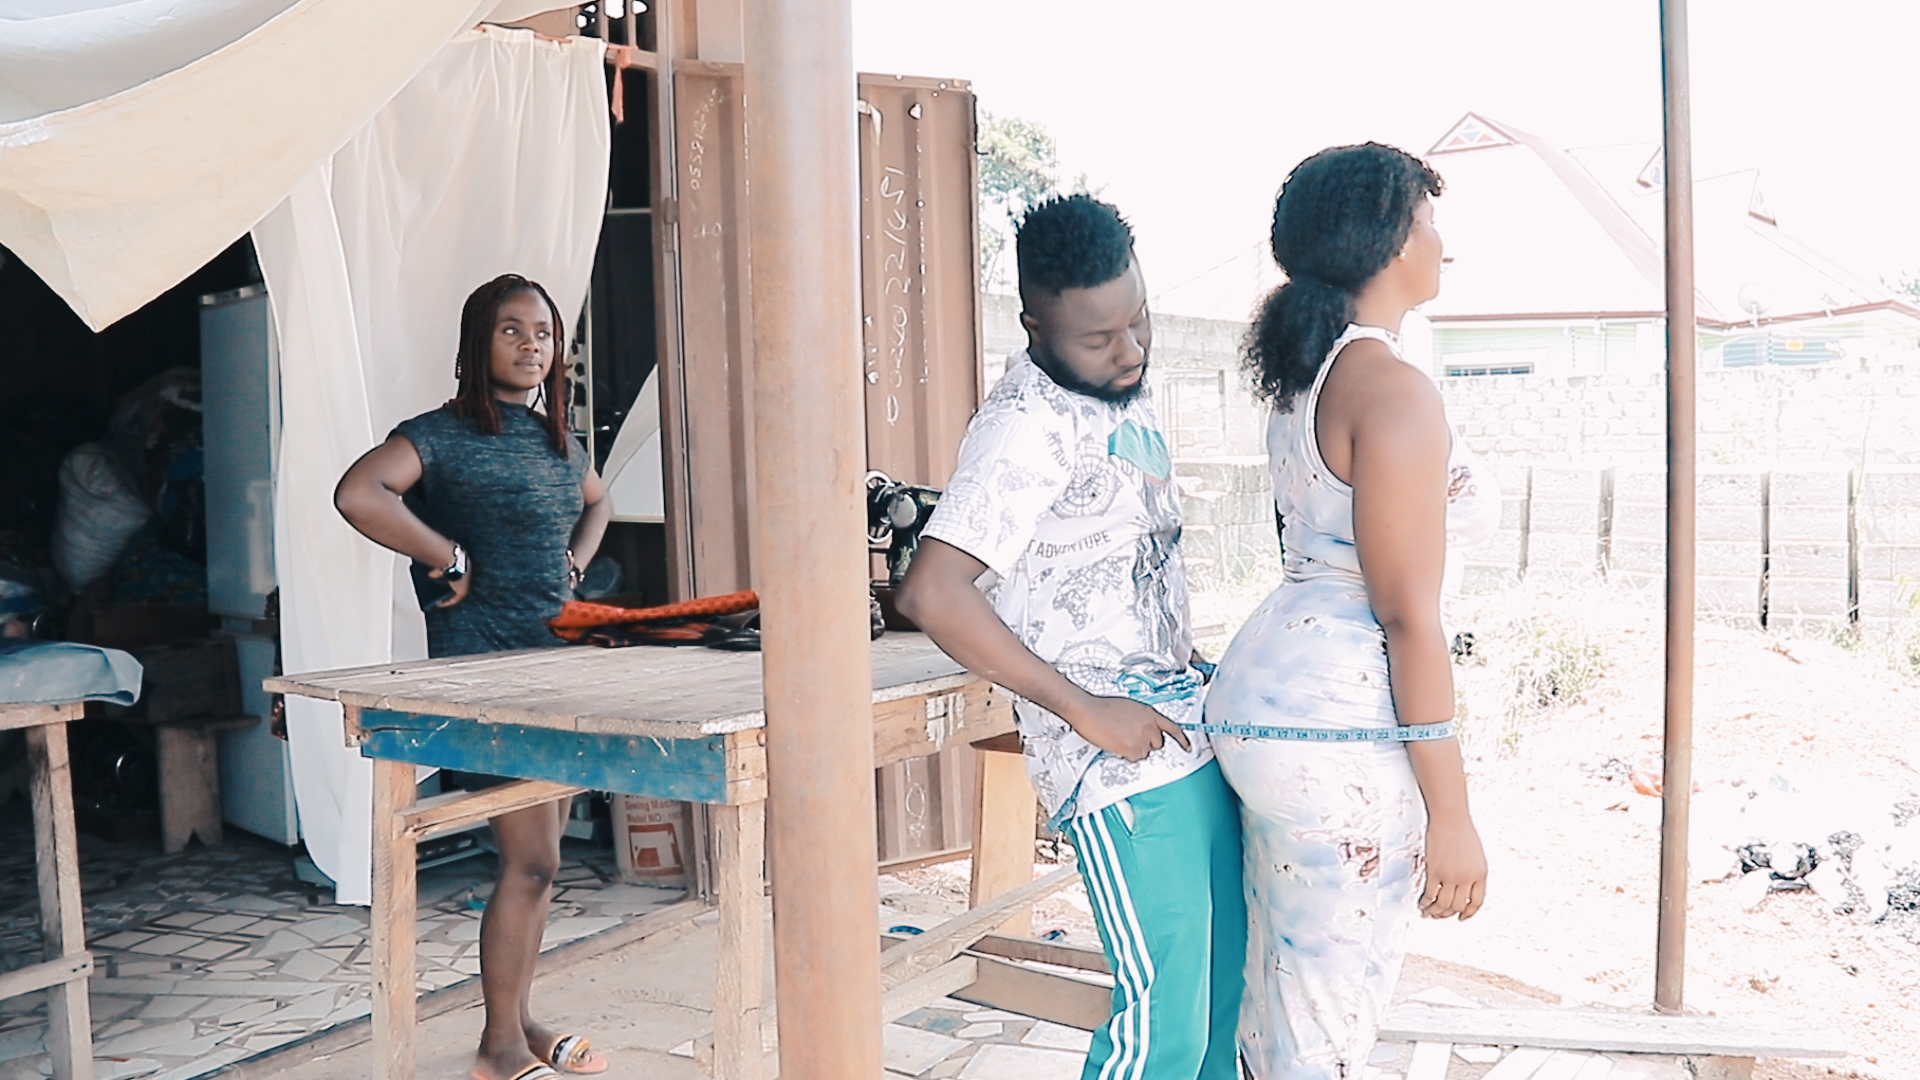 Video Of Male Tailor Caught On Camera Touching A Woman's Back$ide In Public [WATCH]